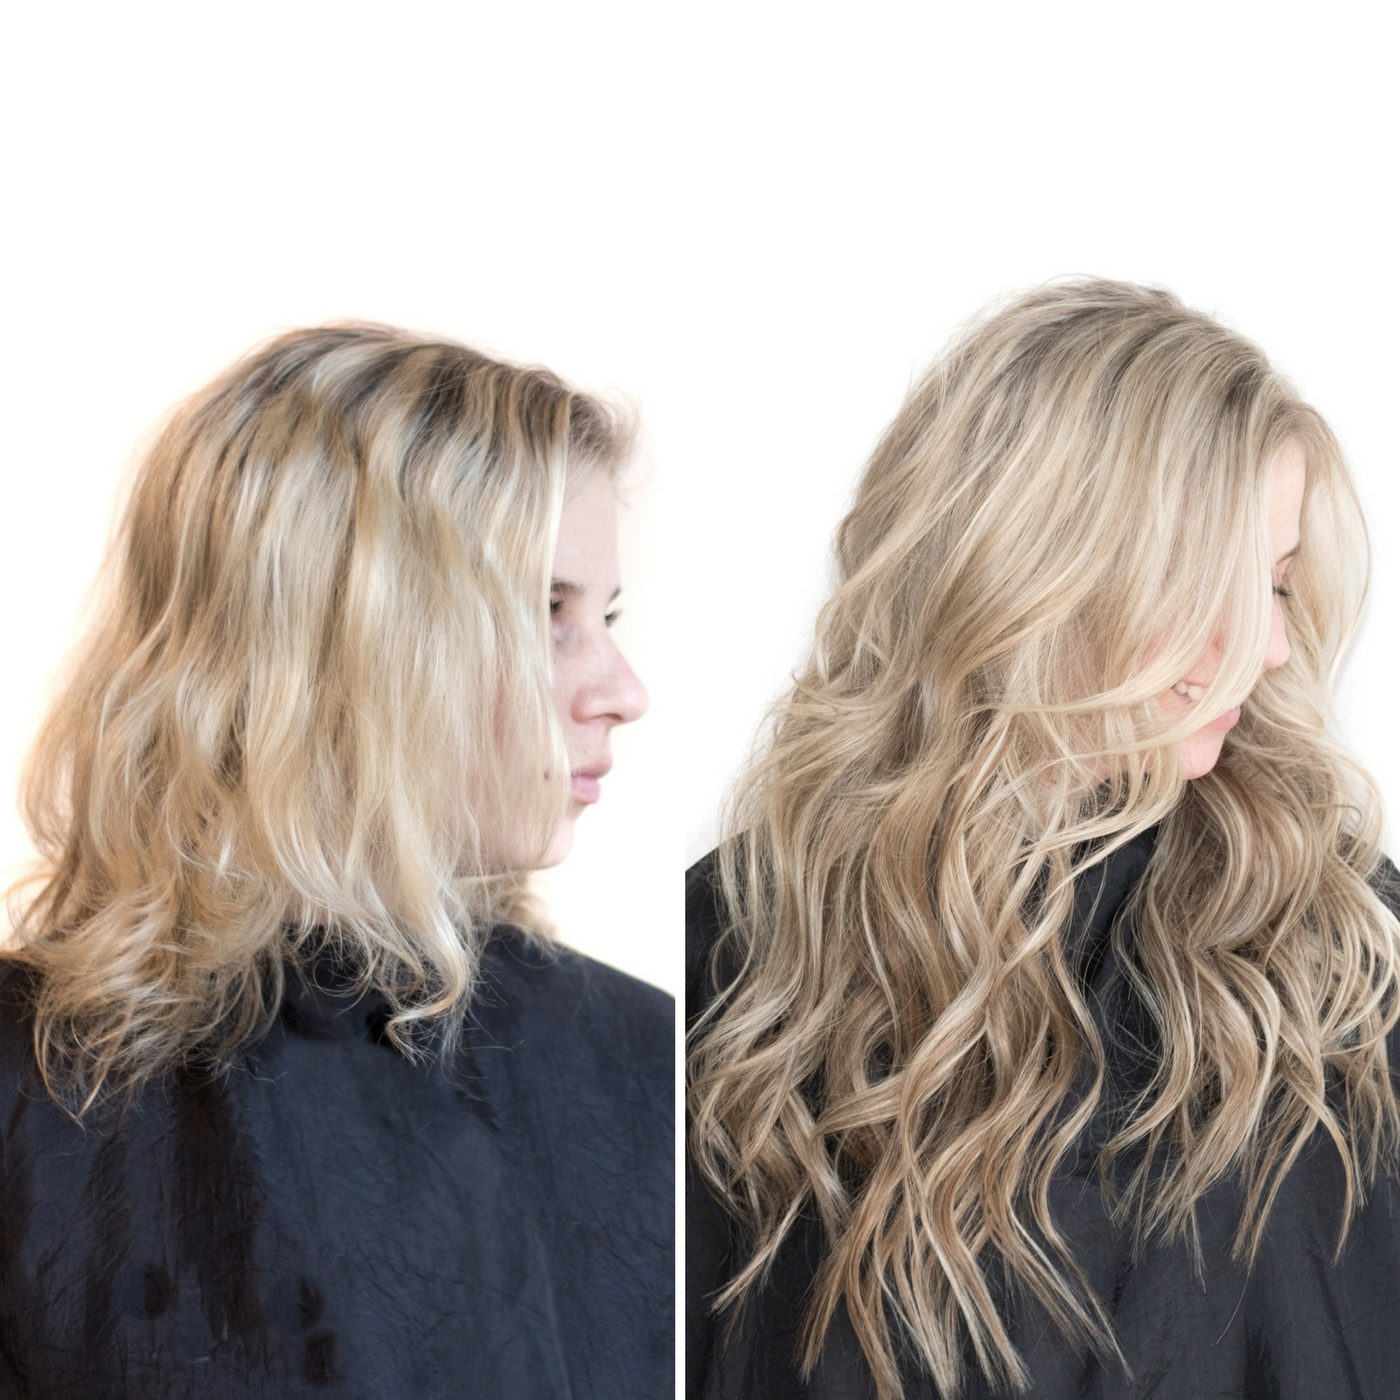 Before & After Hair Extensions